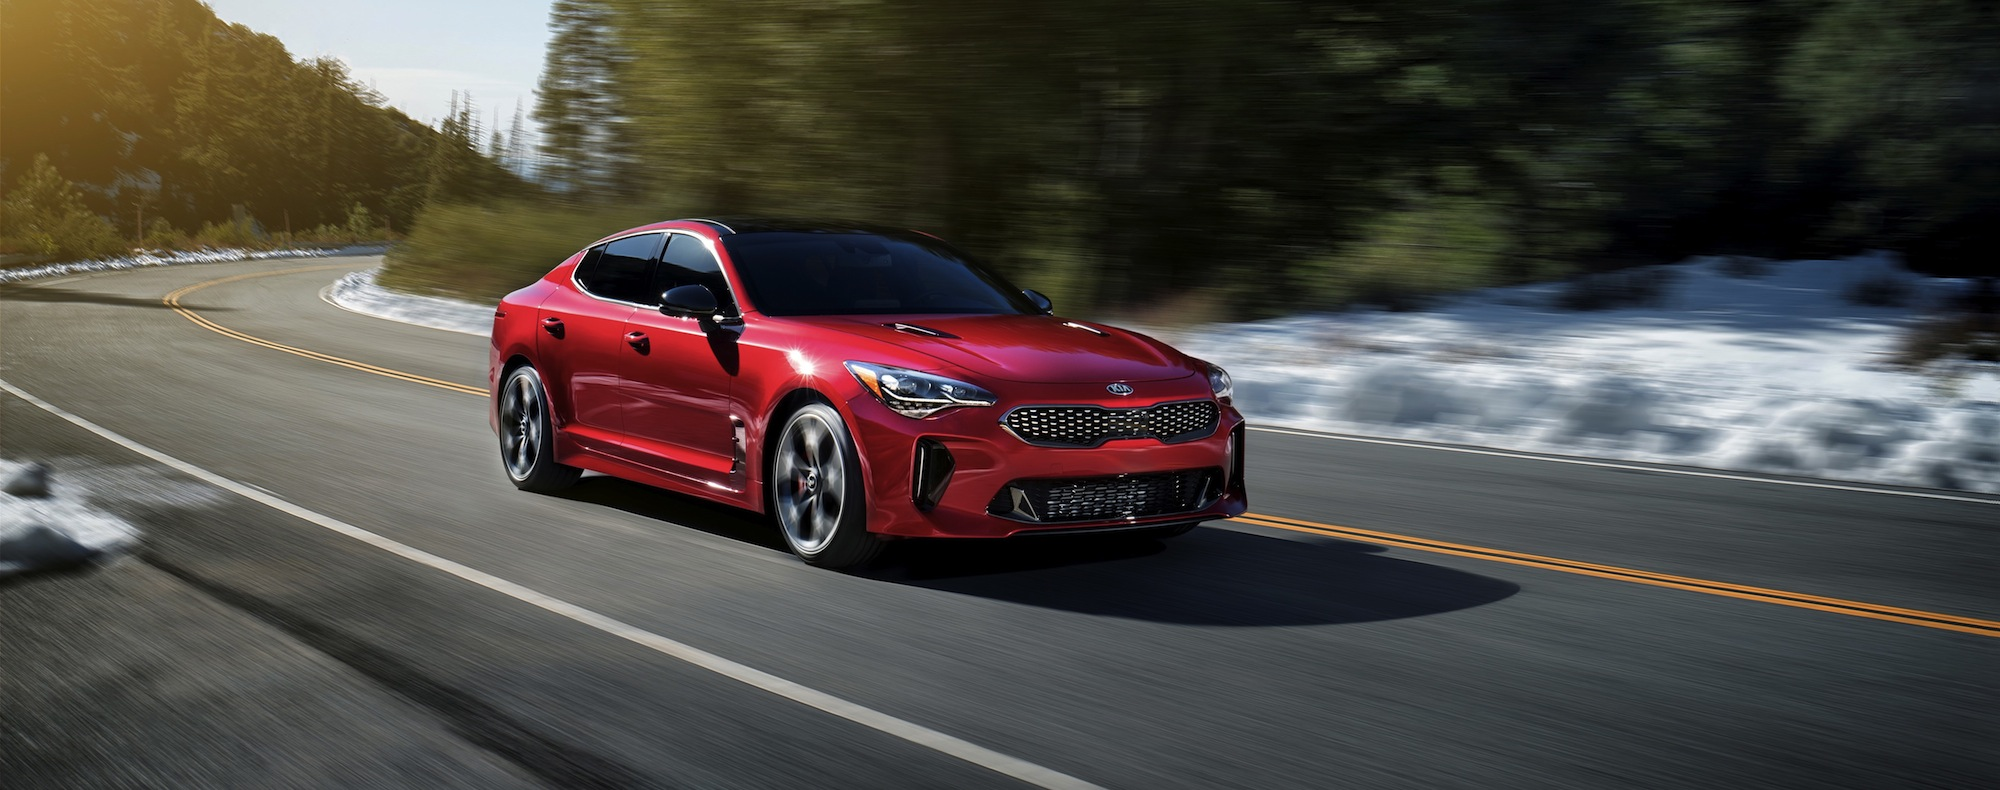 2018 Kia Stinger: New Gunfighter In The Compact Luxury Car Corral